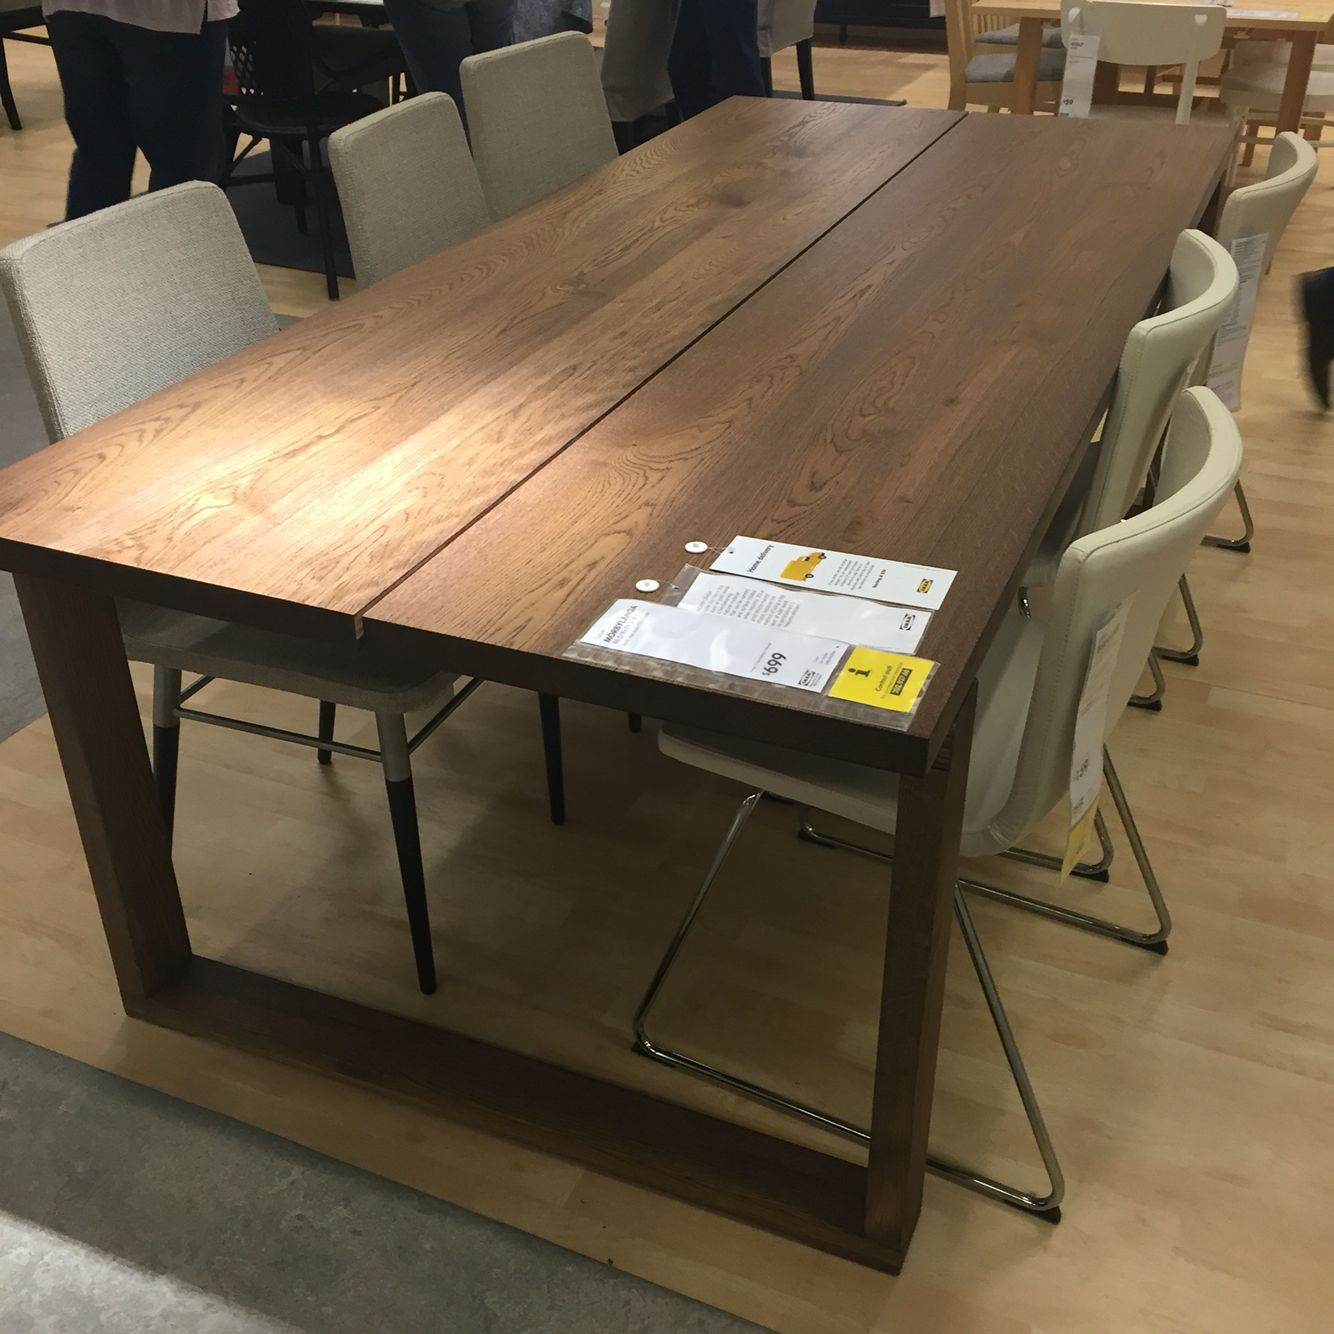 Ikea Breakfast Table: Morbylanga Dining Table - Veneer Oak $700 IKEA